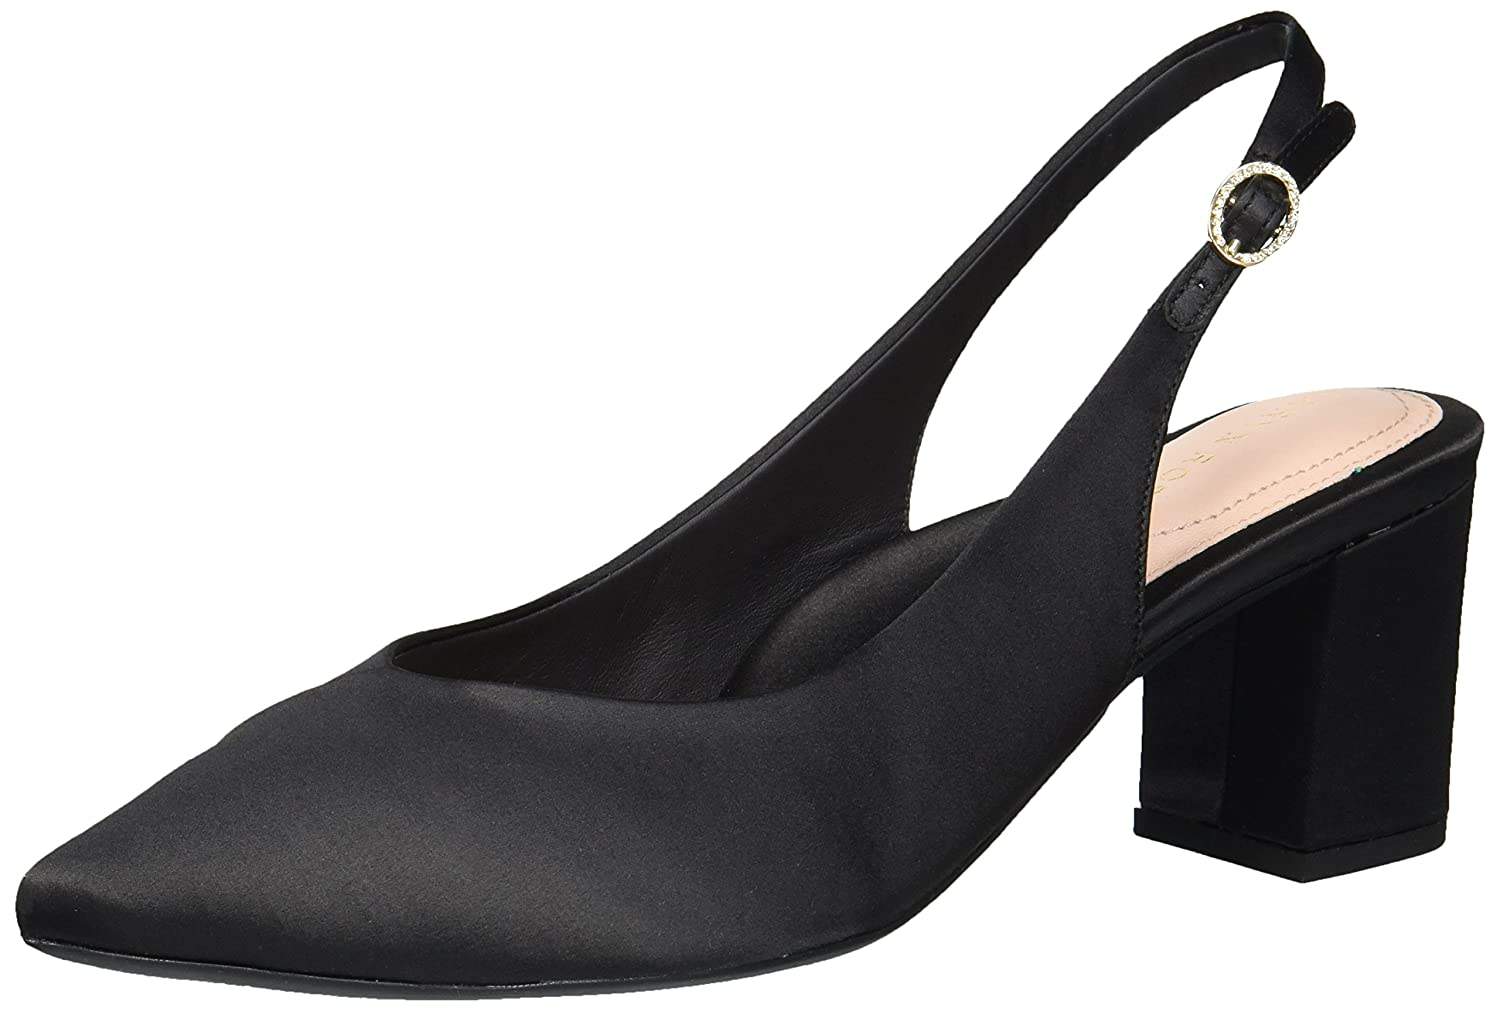 Taryn Rose Women's Marcy Satin Pump B07646LSQF 6 M M US|Black